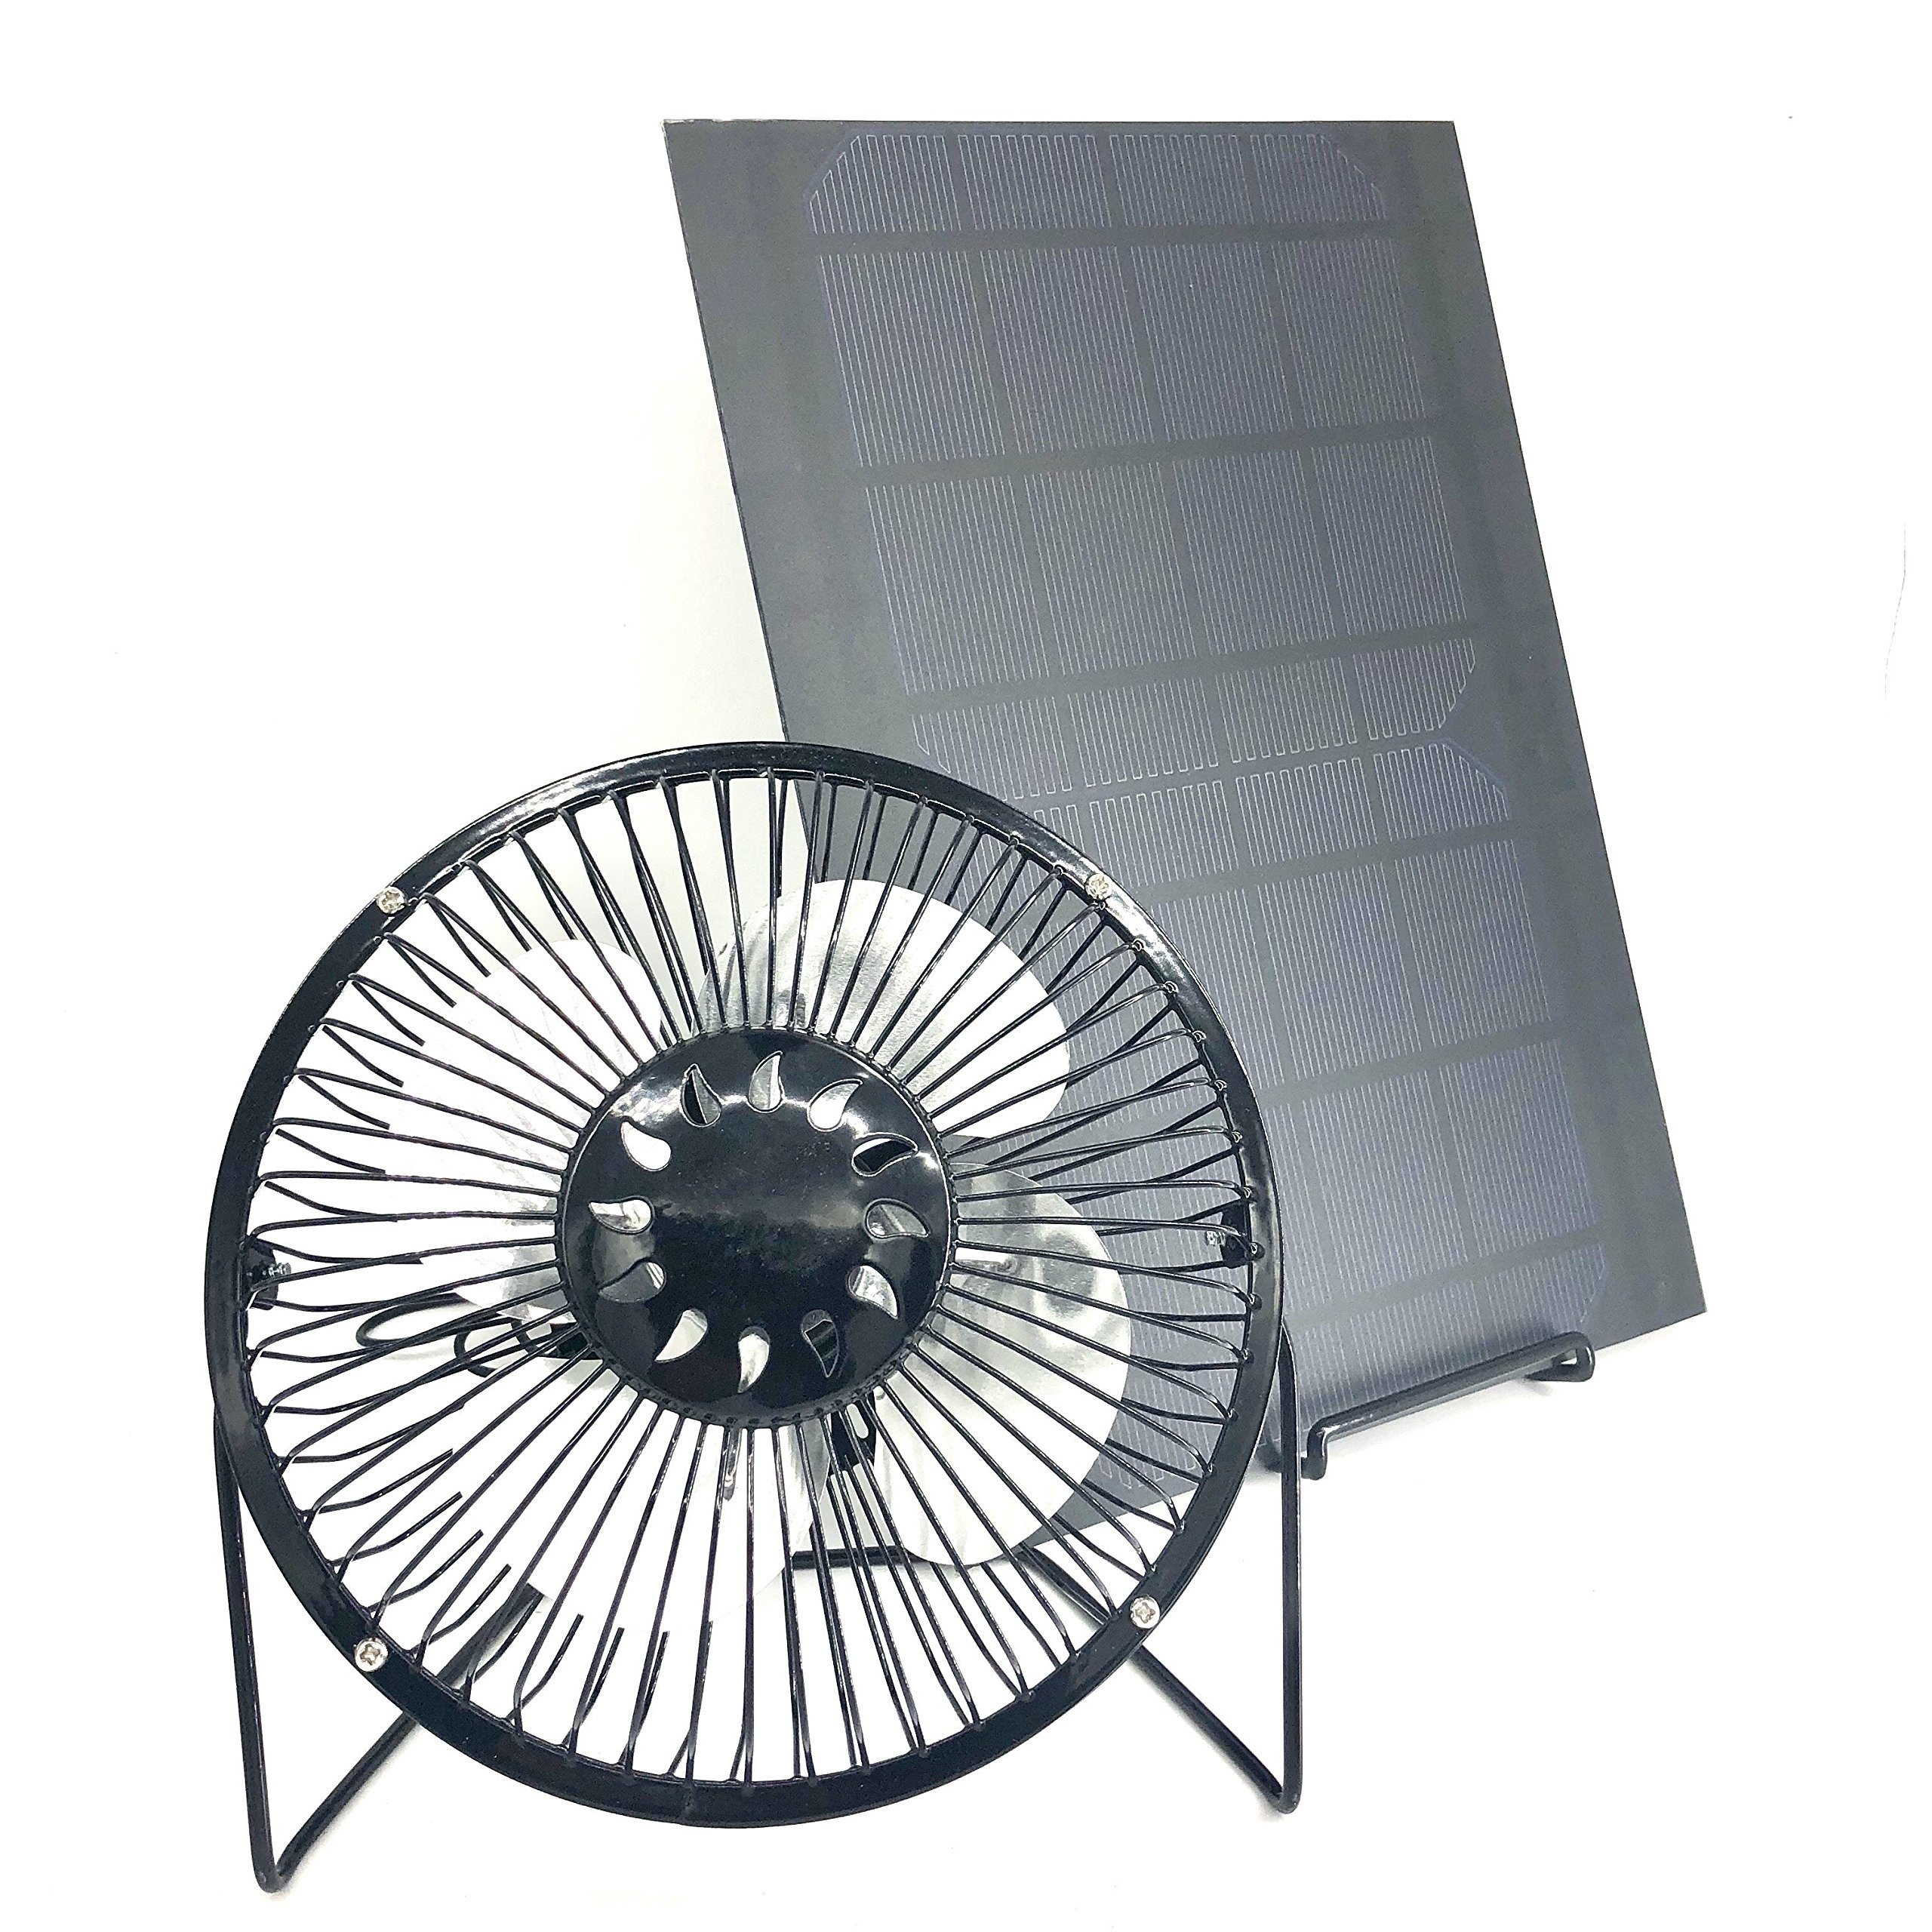 Solar Fan PET 10w 6inch with Iron Holder Powered Fan Ventilation Caravan Camping